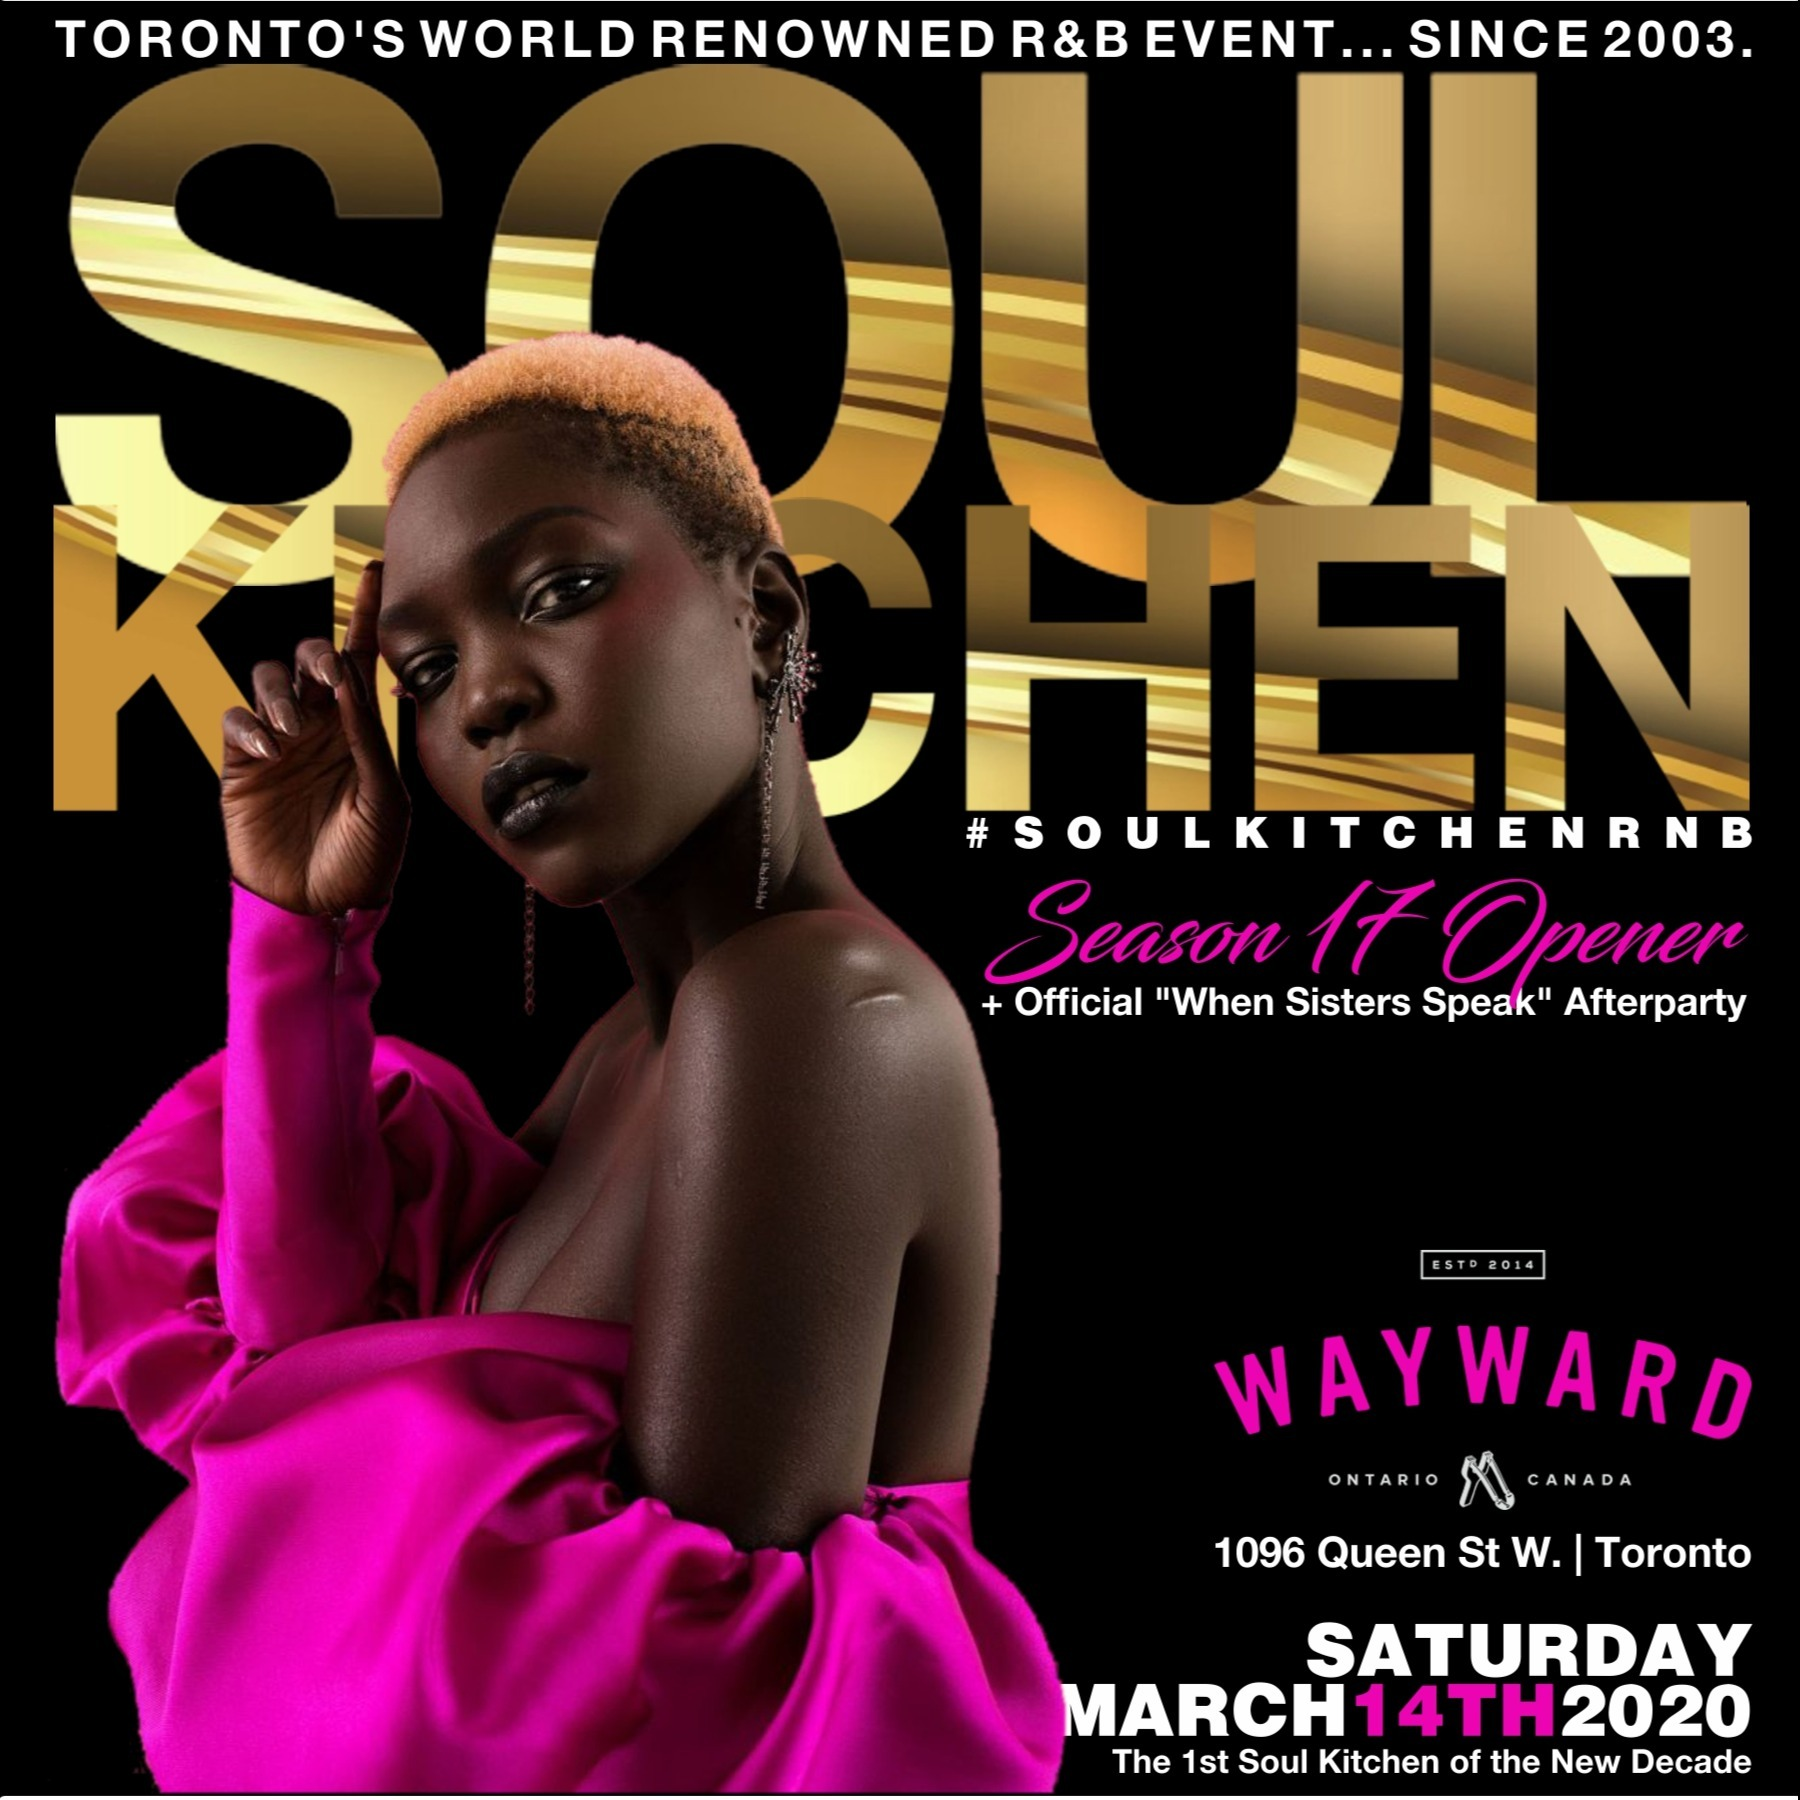 SOUL KITCHEN | Season 17 Opener & Official